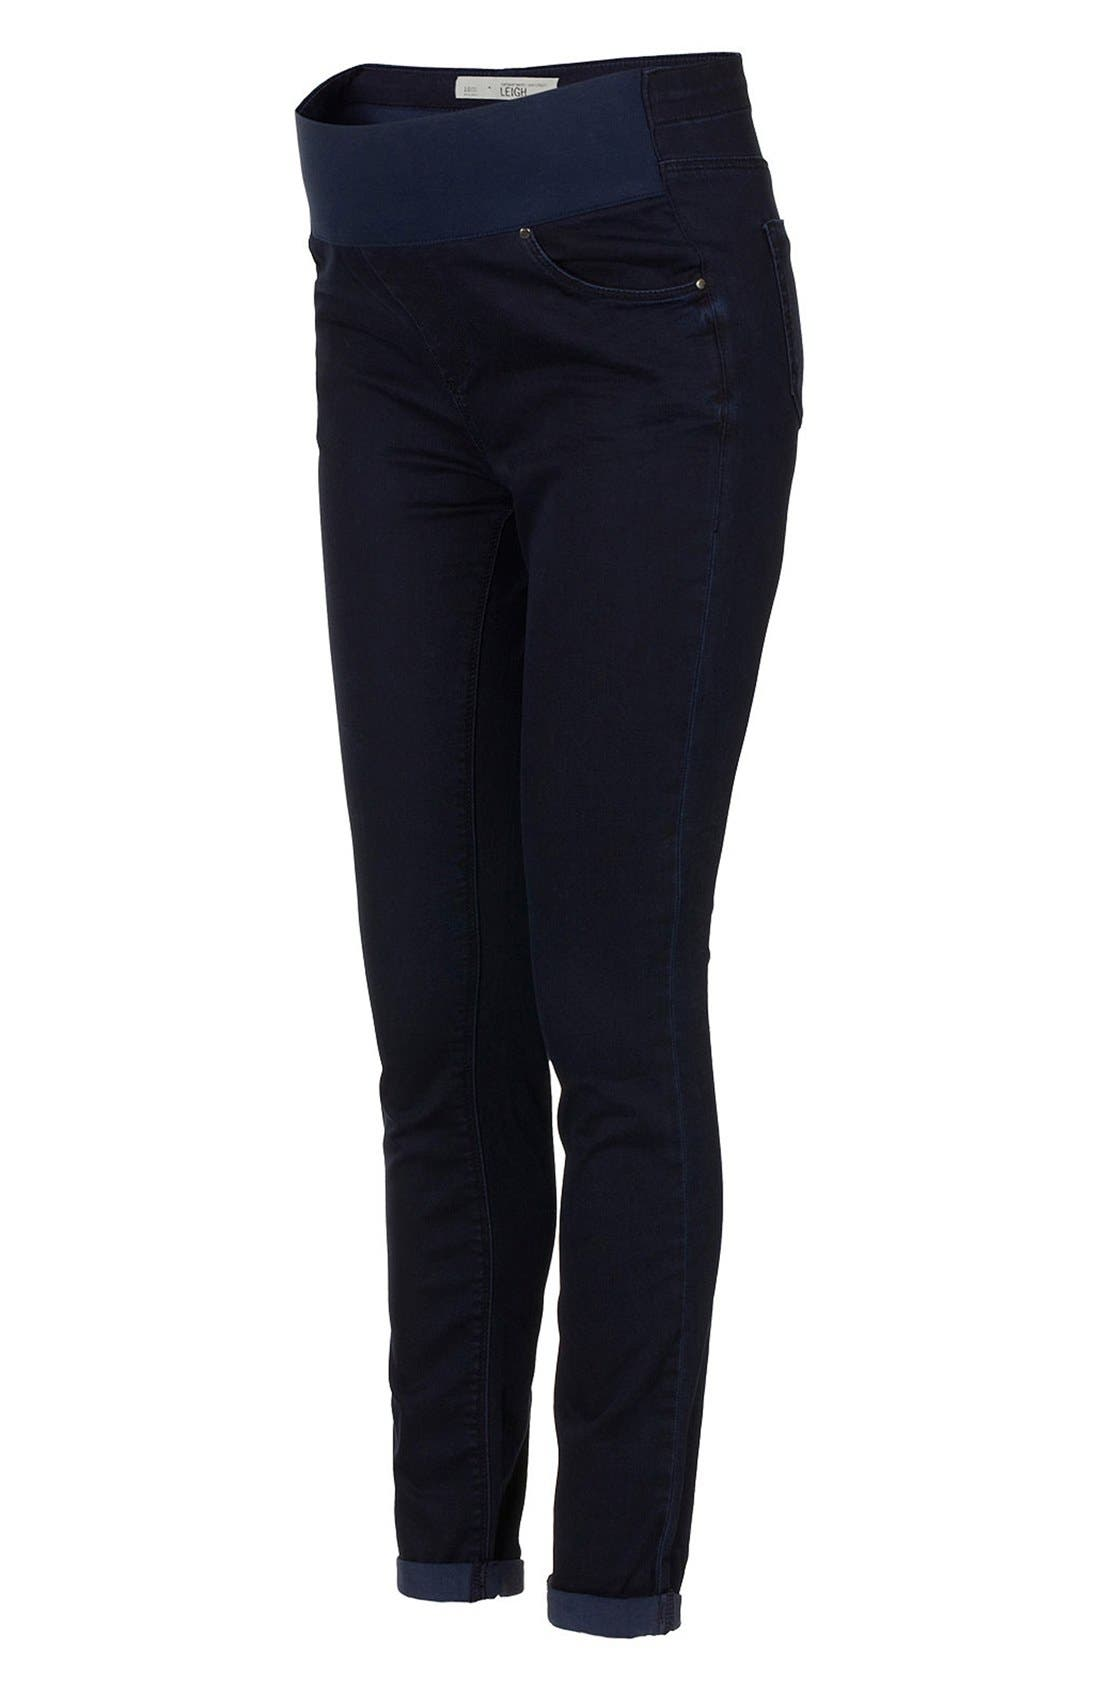 Alternate Image 1 Selected - Topshop Moto 'Leigh' Maternity Jeans (Indigo)